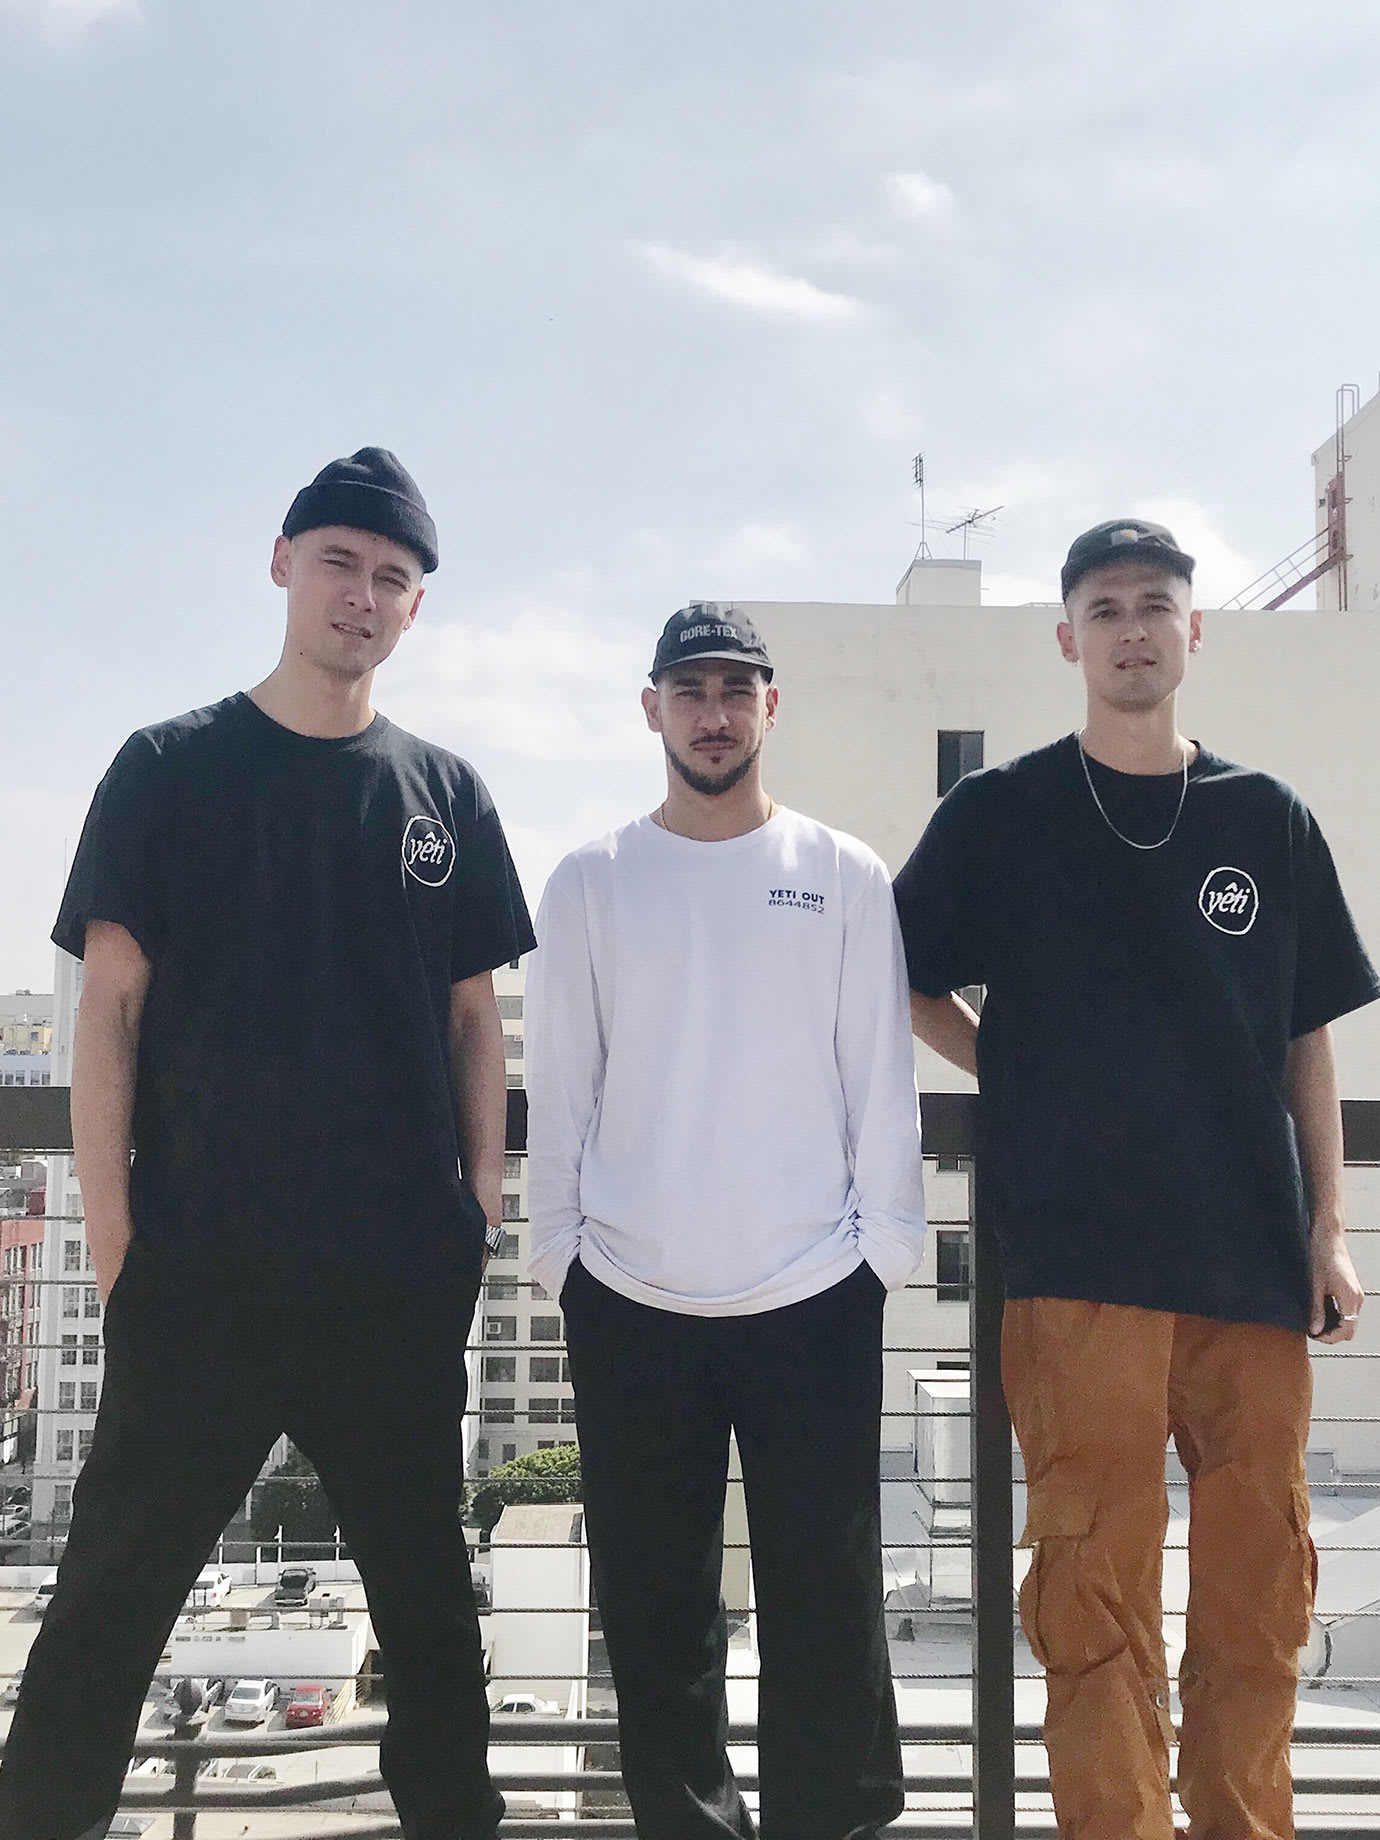 Three men standing on a roof in a city.